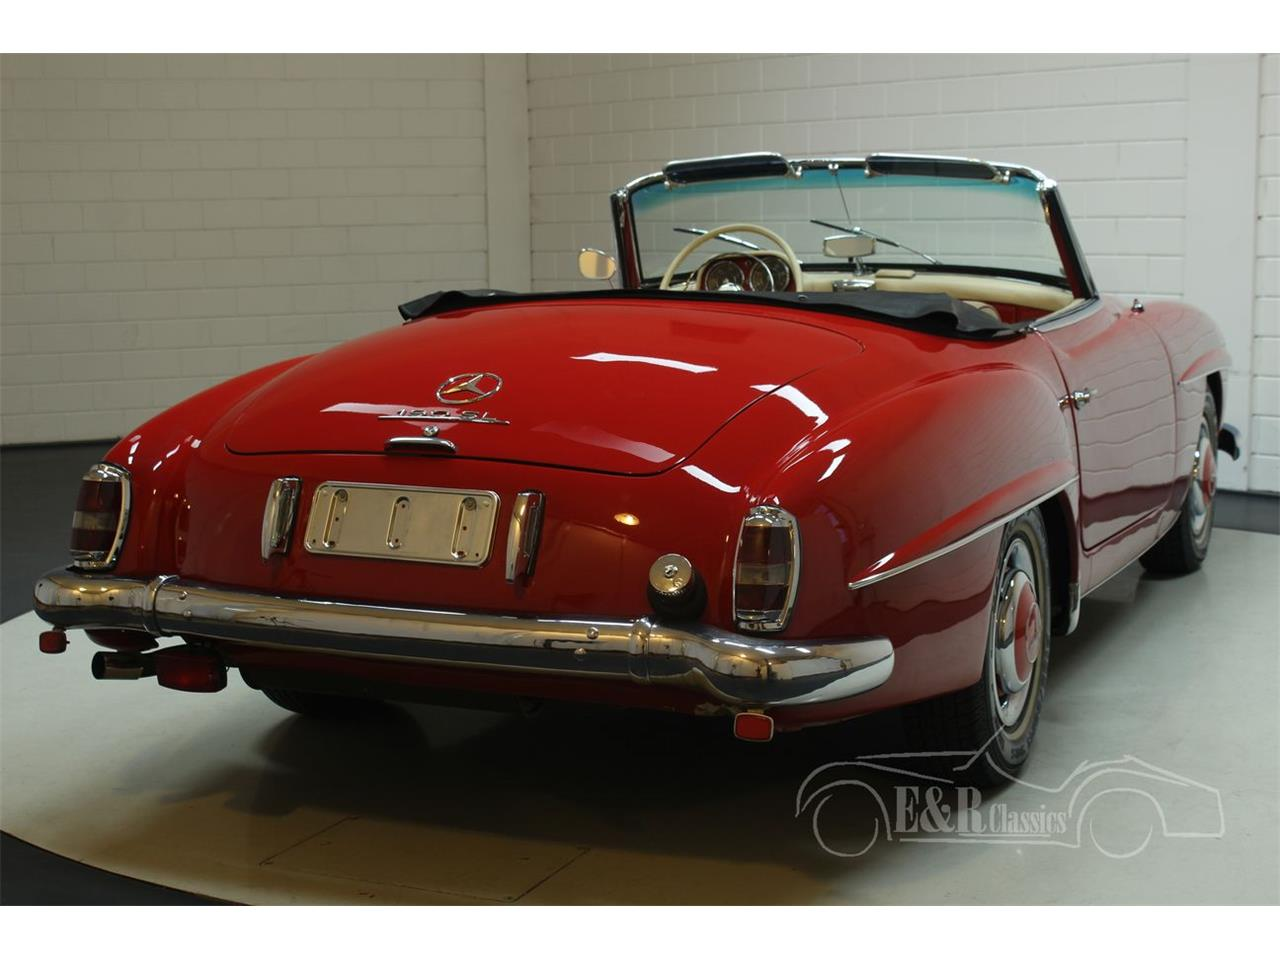 Large Picture of 1956 Mercedes-Benz 190SL located in Waalwijk - Keine Angabe - Offered by E & R Classics - PH44